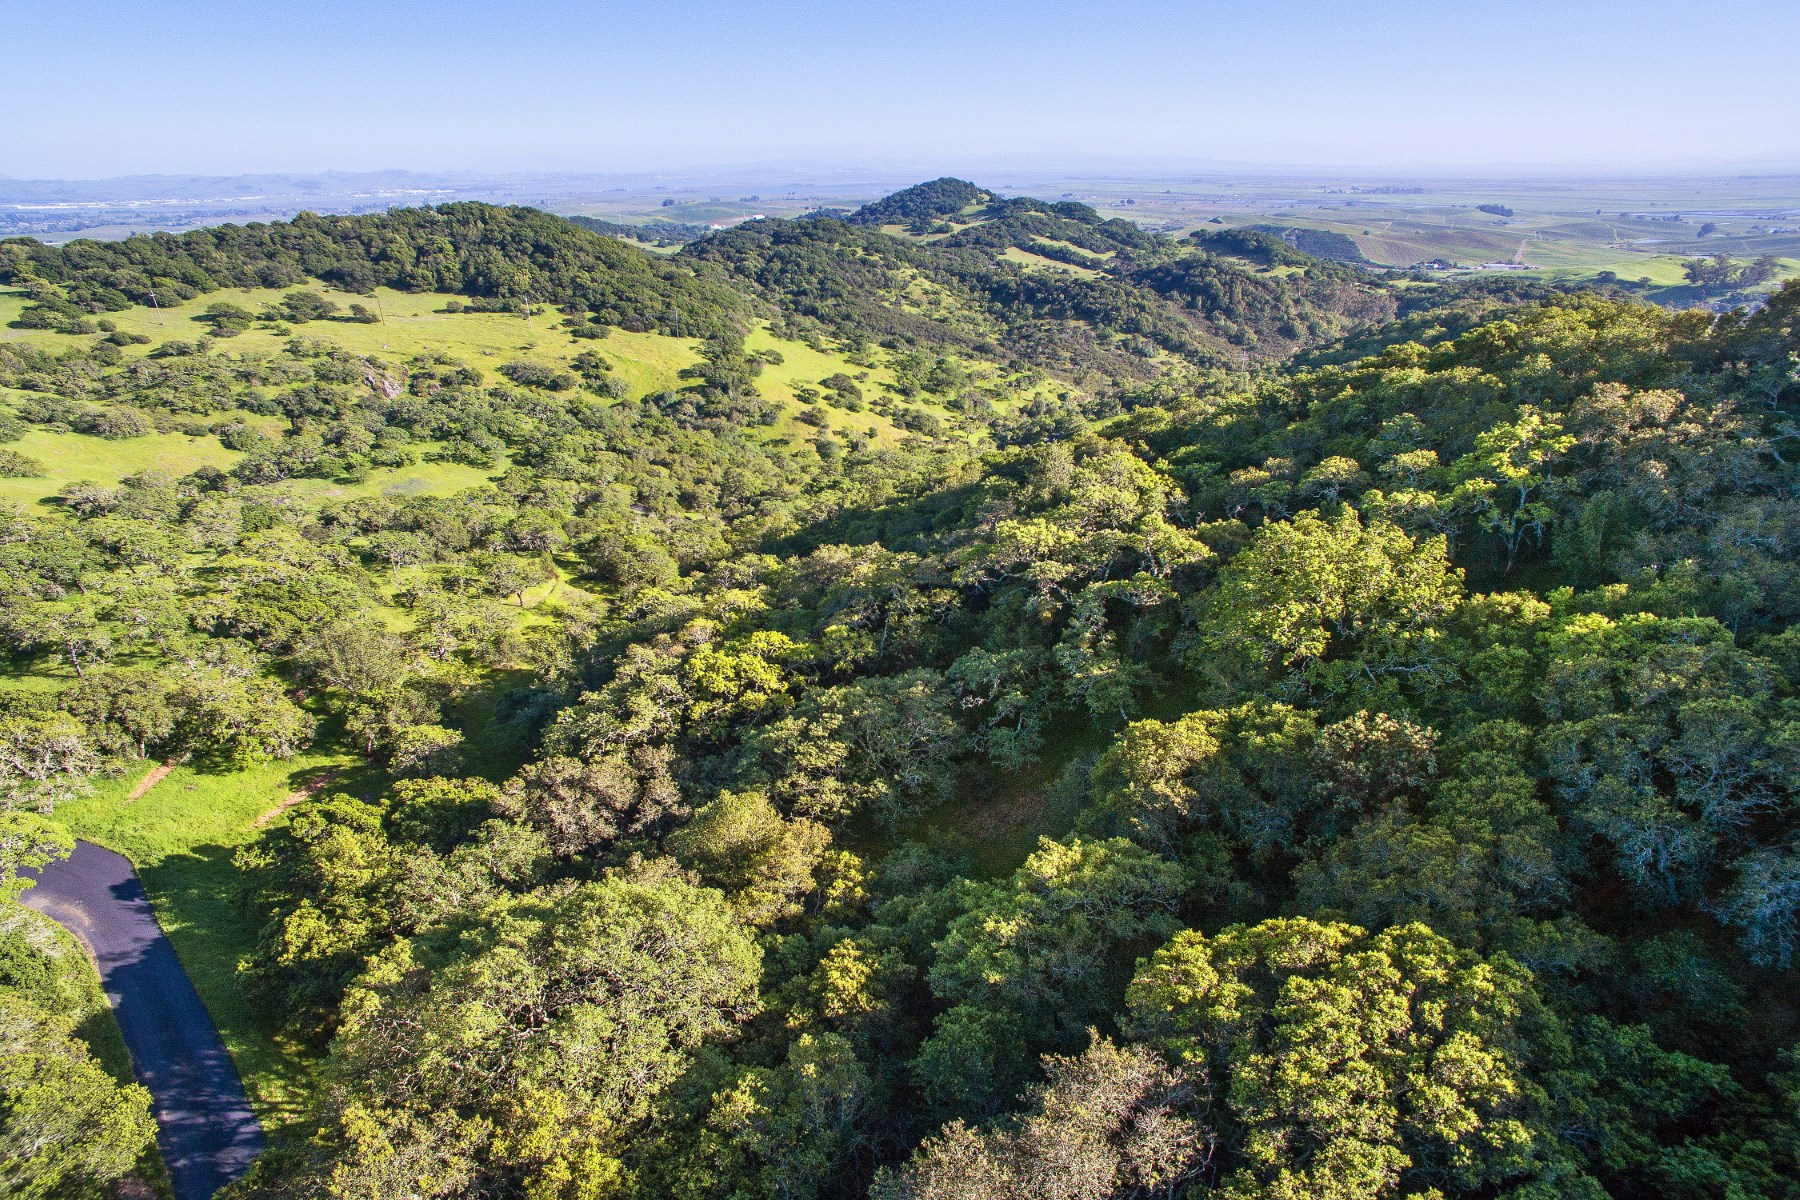 Single Family Home for Sale at Over 10 Acres of Exceptional Level Land 19292 Arrowhead Mountain Rd. Sonoma, California, 95476 United States